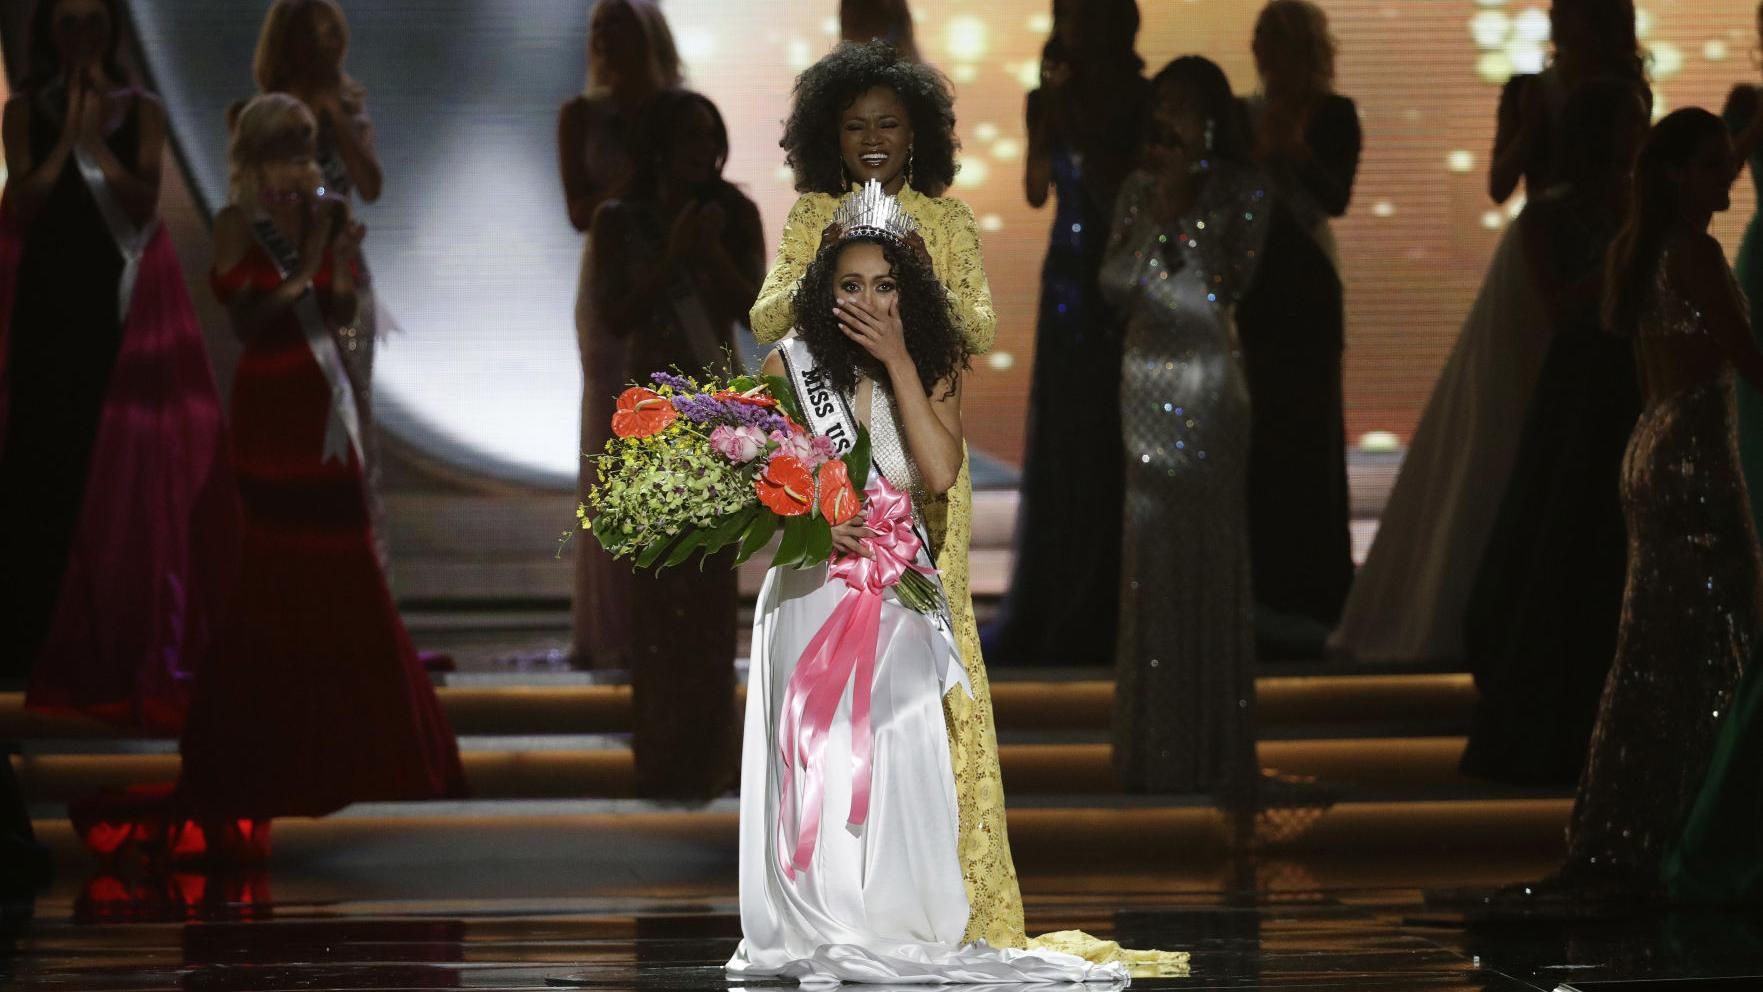 Photos: Miss District of Columbia crowned as Miss USA